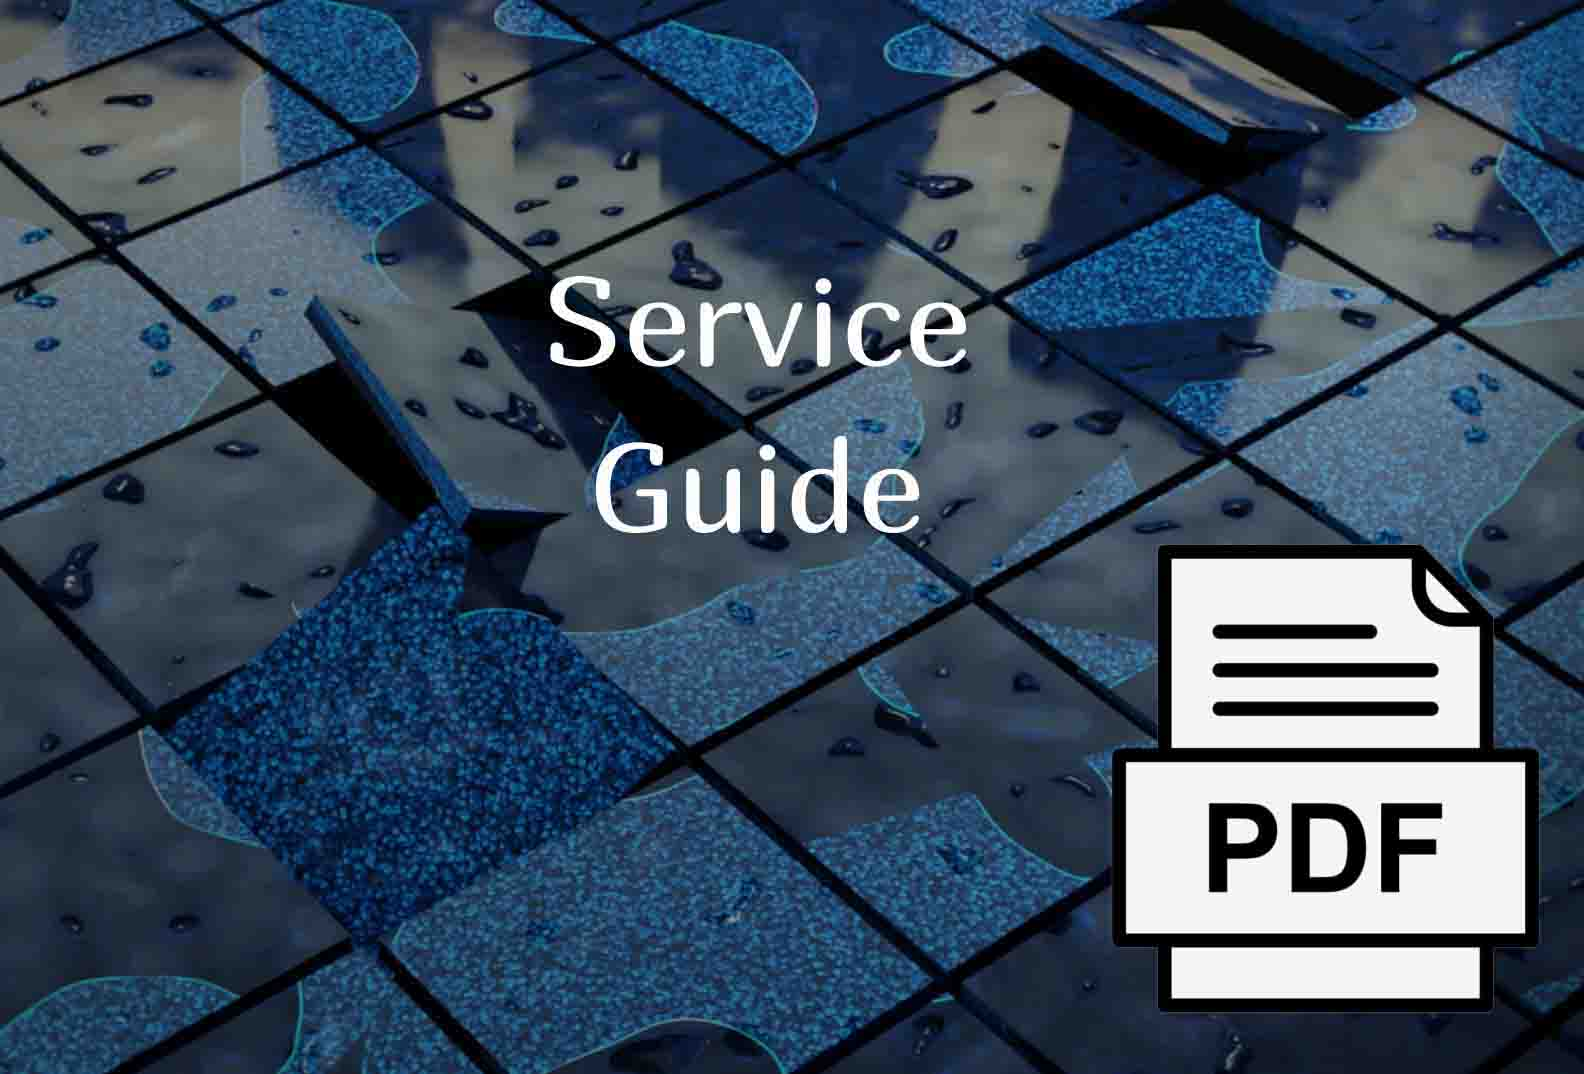 Whitepaper Service Guide